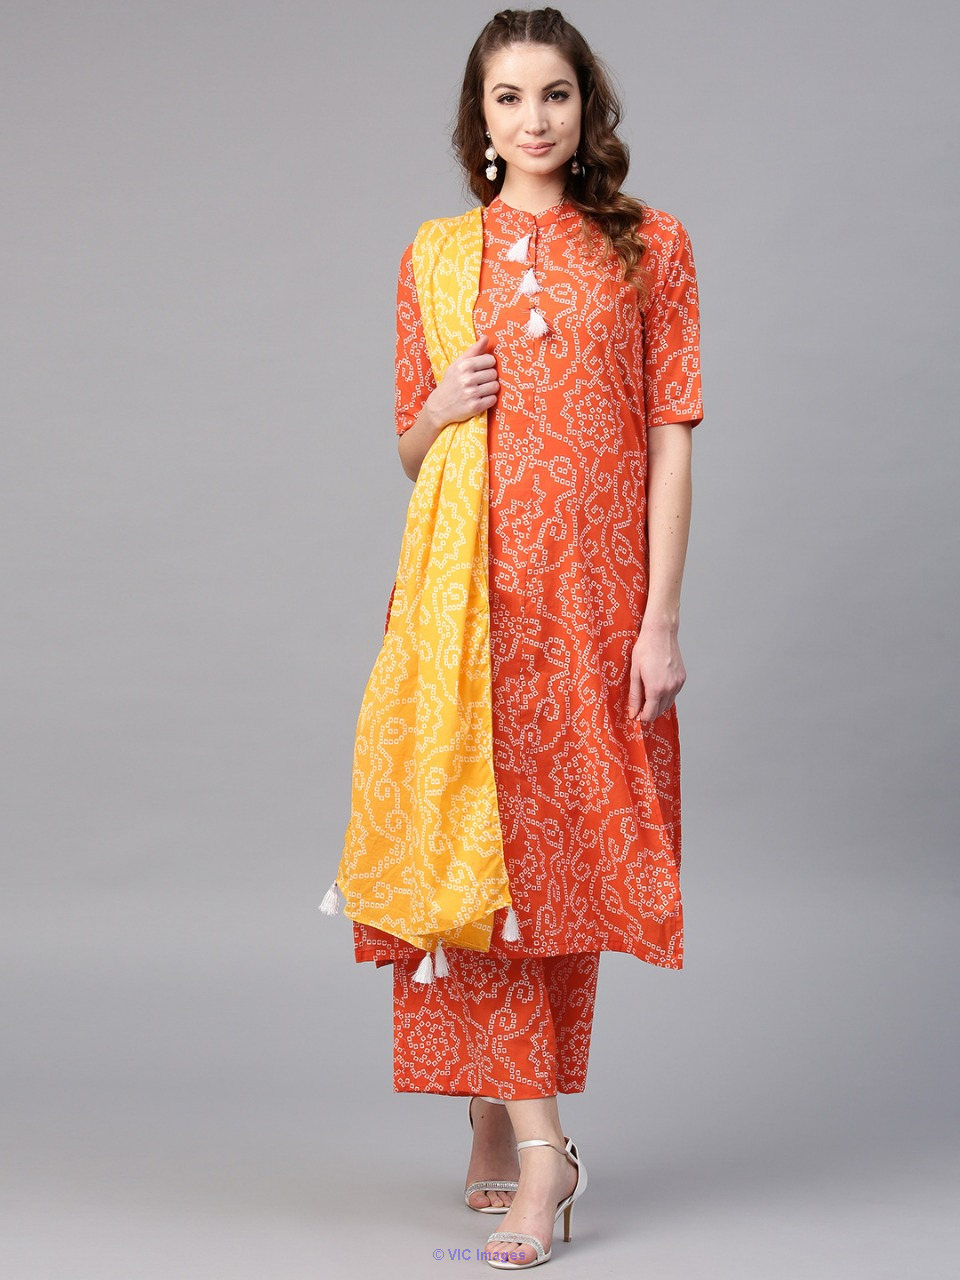 Orange Bandhani Printed Straight Kurta With Palazzo & Yellow Dupatta  calgary